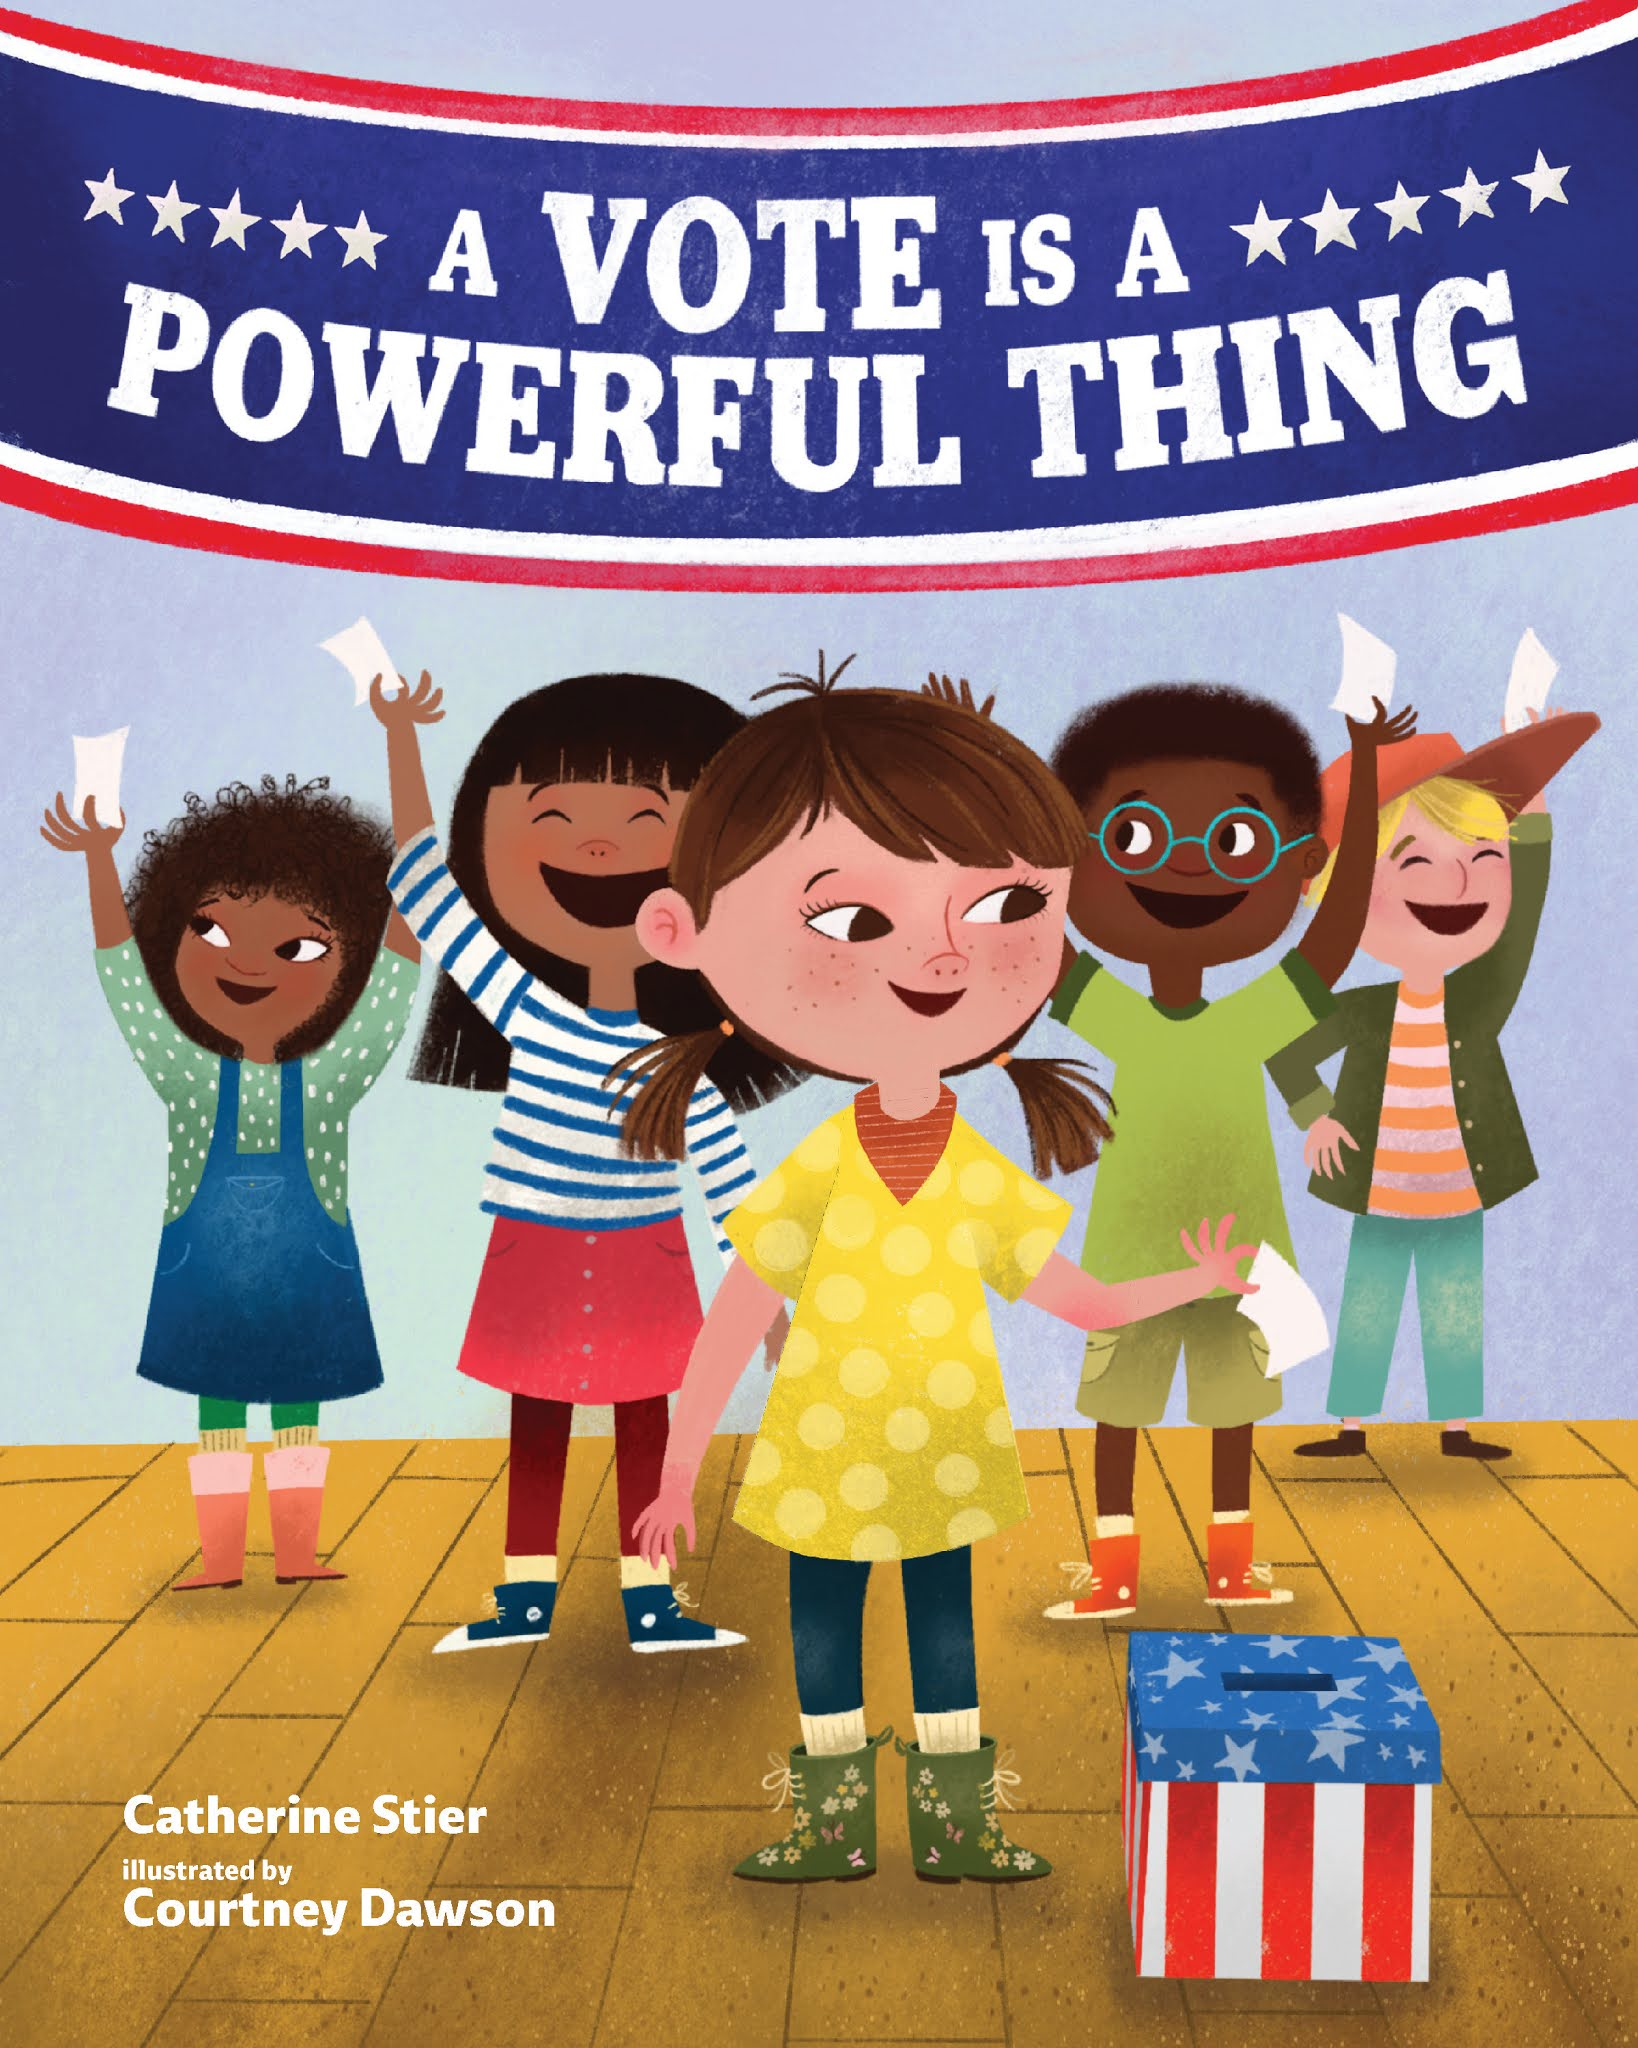 A Vote is a Powerful Thing cover: hanging red, white and blue banner with title, and five children underneath, with one child ready to drop a paper ballot into a ballot box.